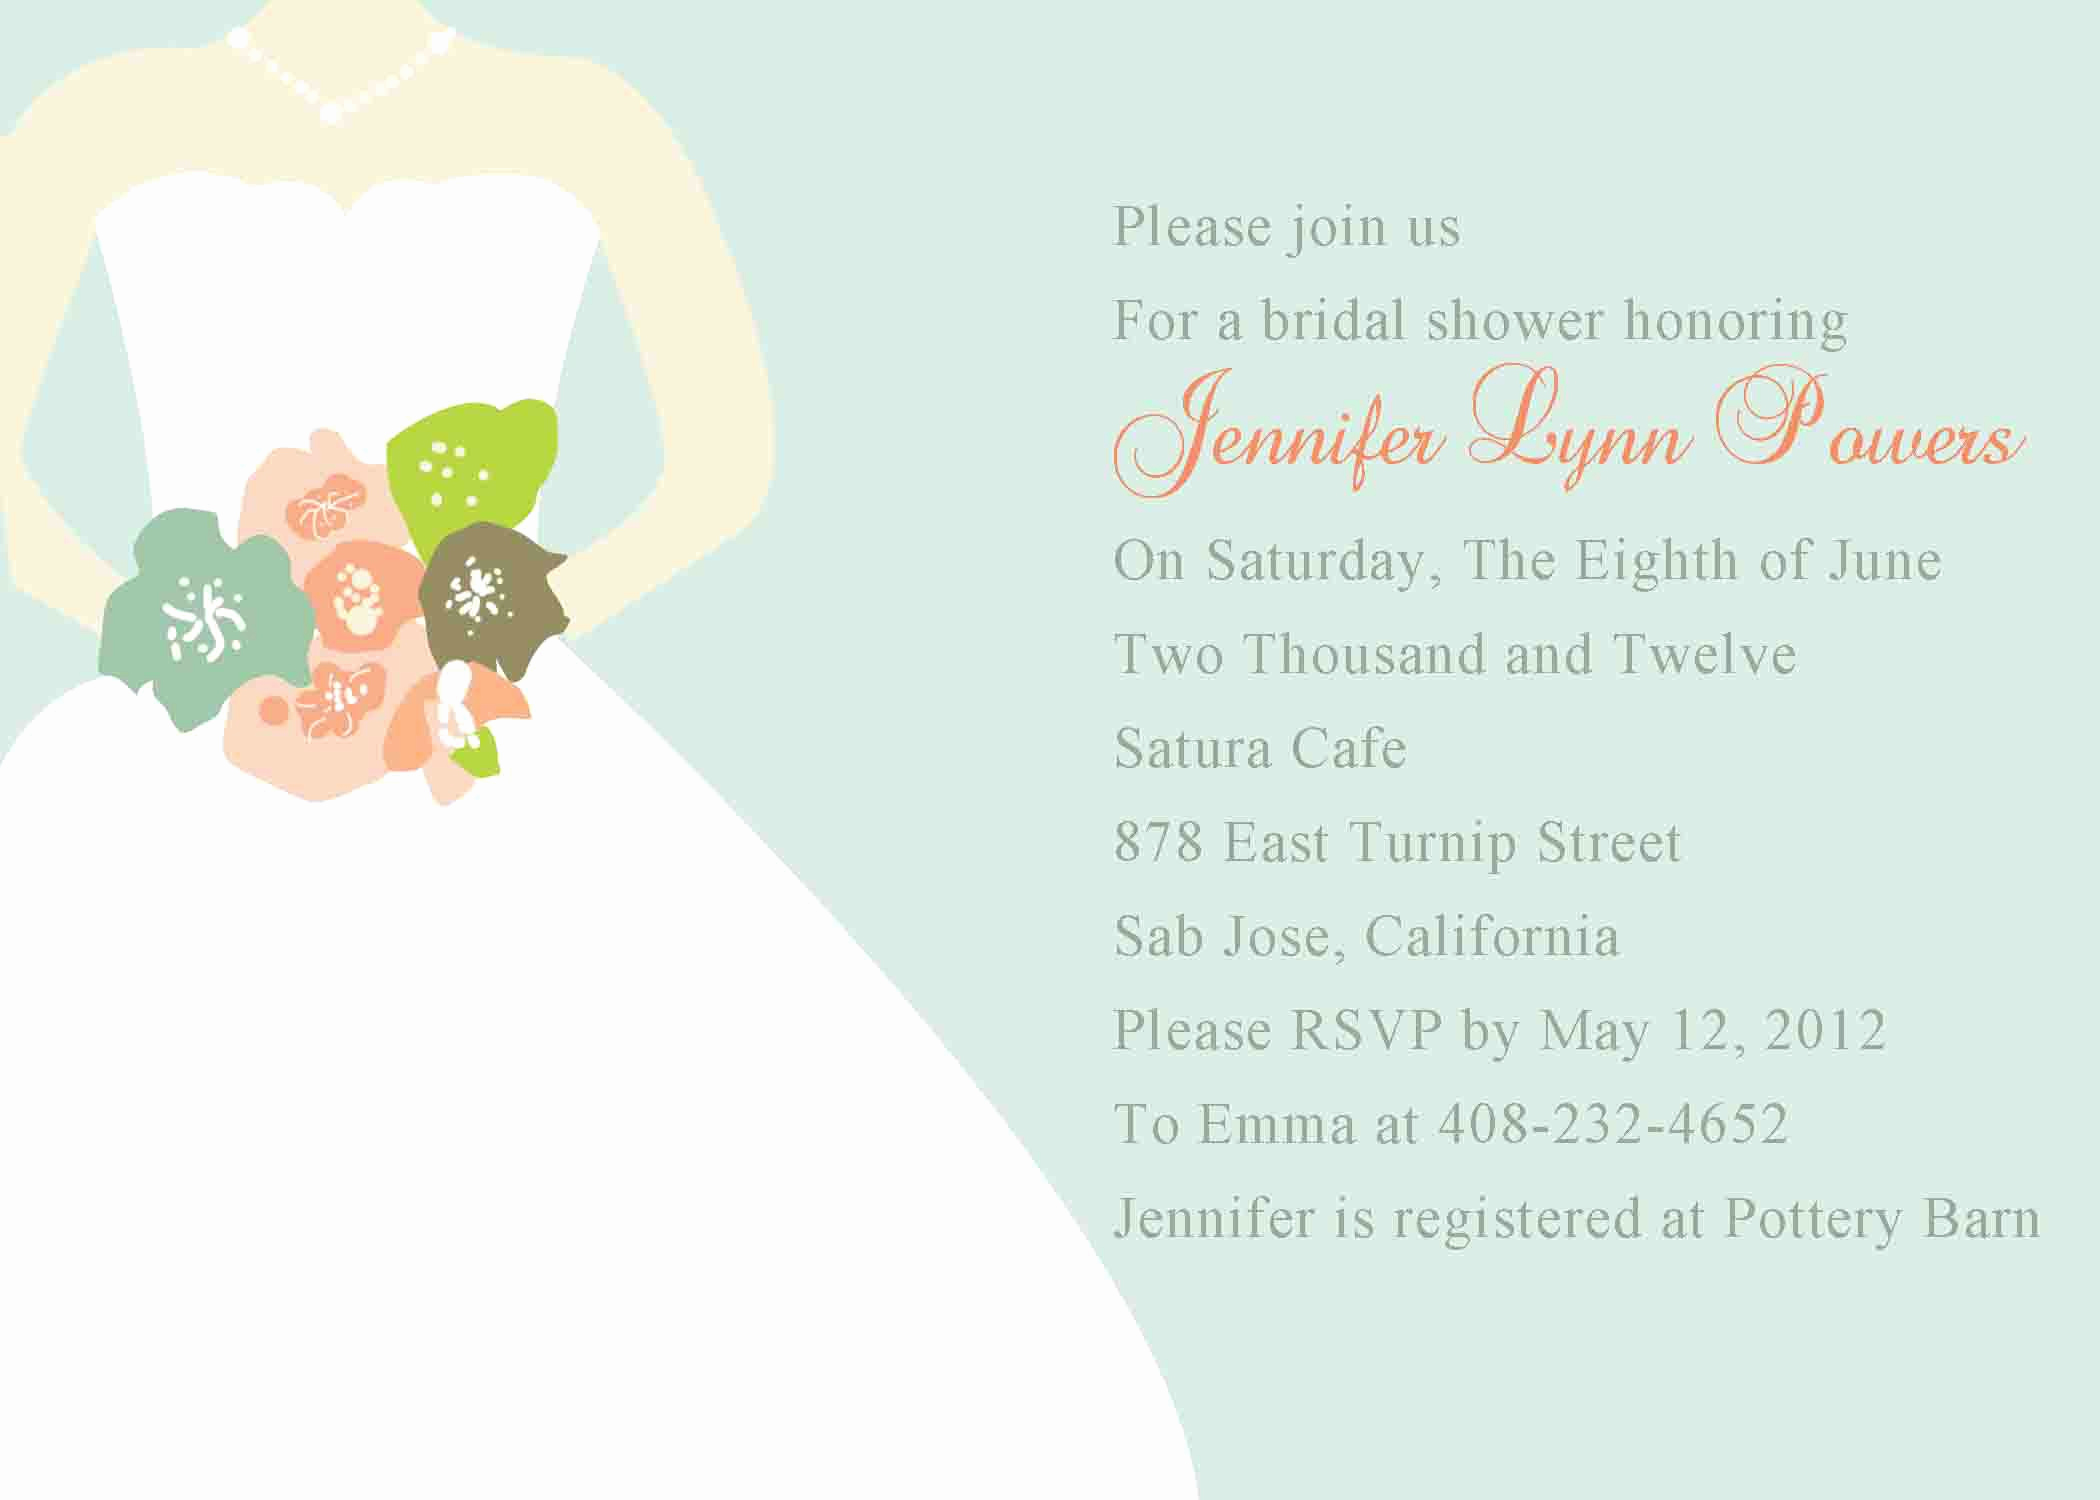 Bridal Shower Invitation Images Awesome Bridal Shower Gift Card Bridal Shower Invitation Wording